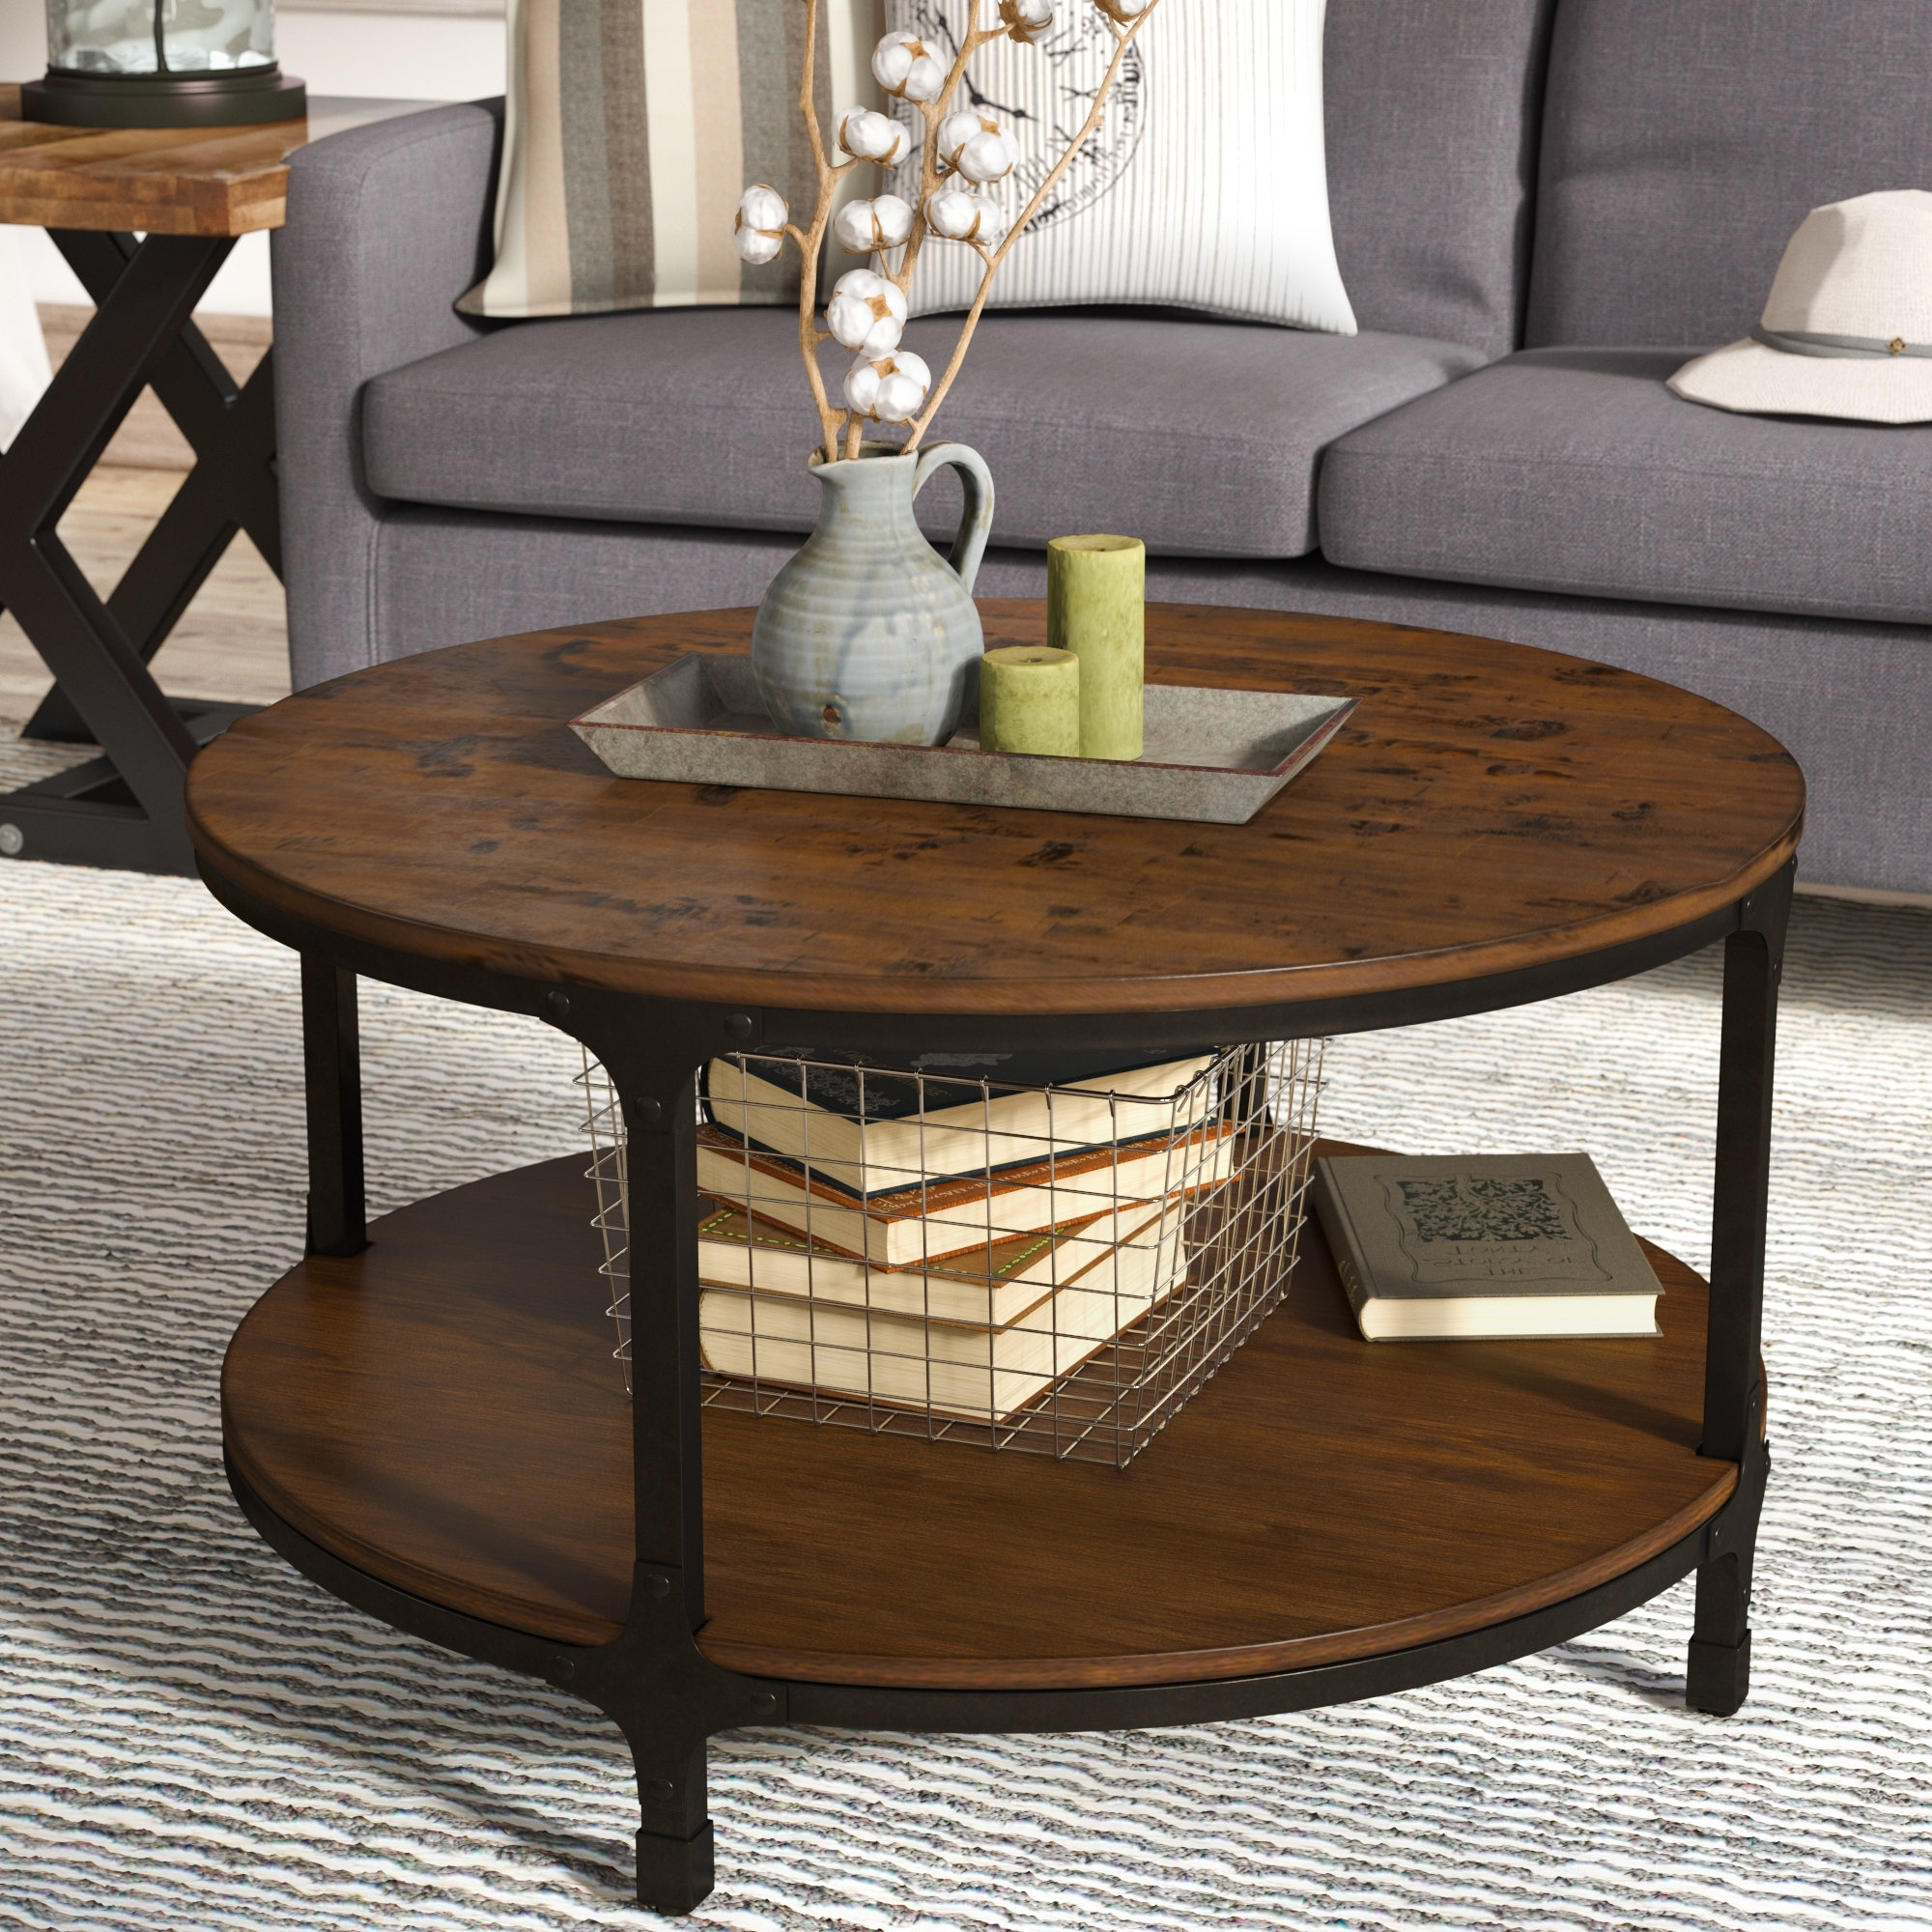 Wayfair Throughout Best And Newest Go Cart White Rolling Coffee Tables (View 19 of 20)